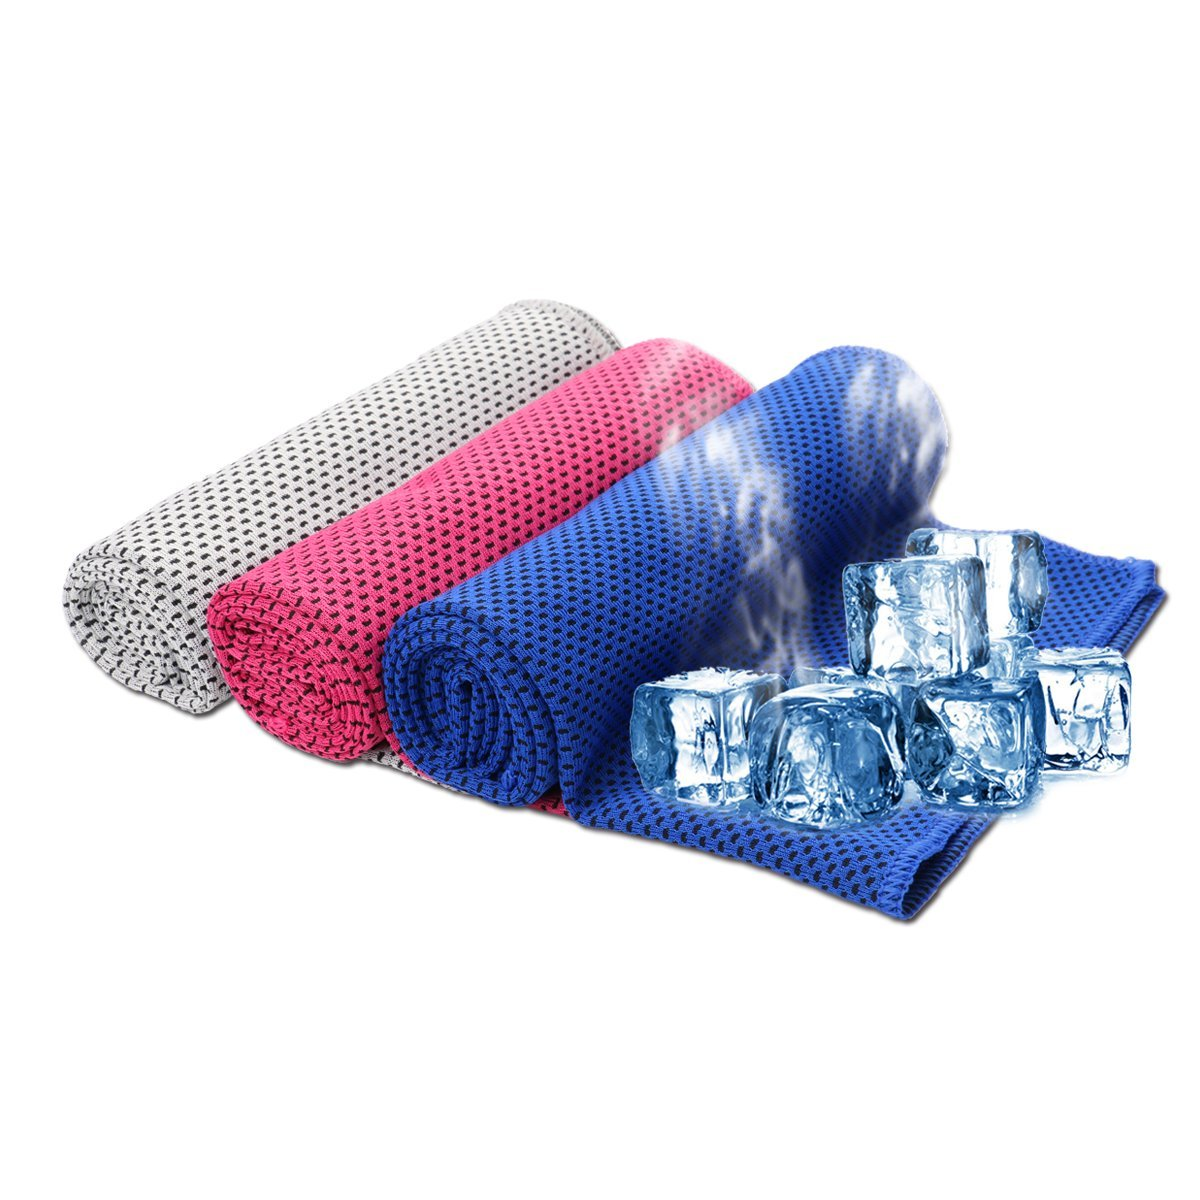 SHISHUO Cooling Towel - 3 Pack Ice Cold Instant Relief Quick Dry Sweat Towel for Sports 85 x 30 cm (Green, Orange, Blue)